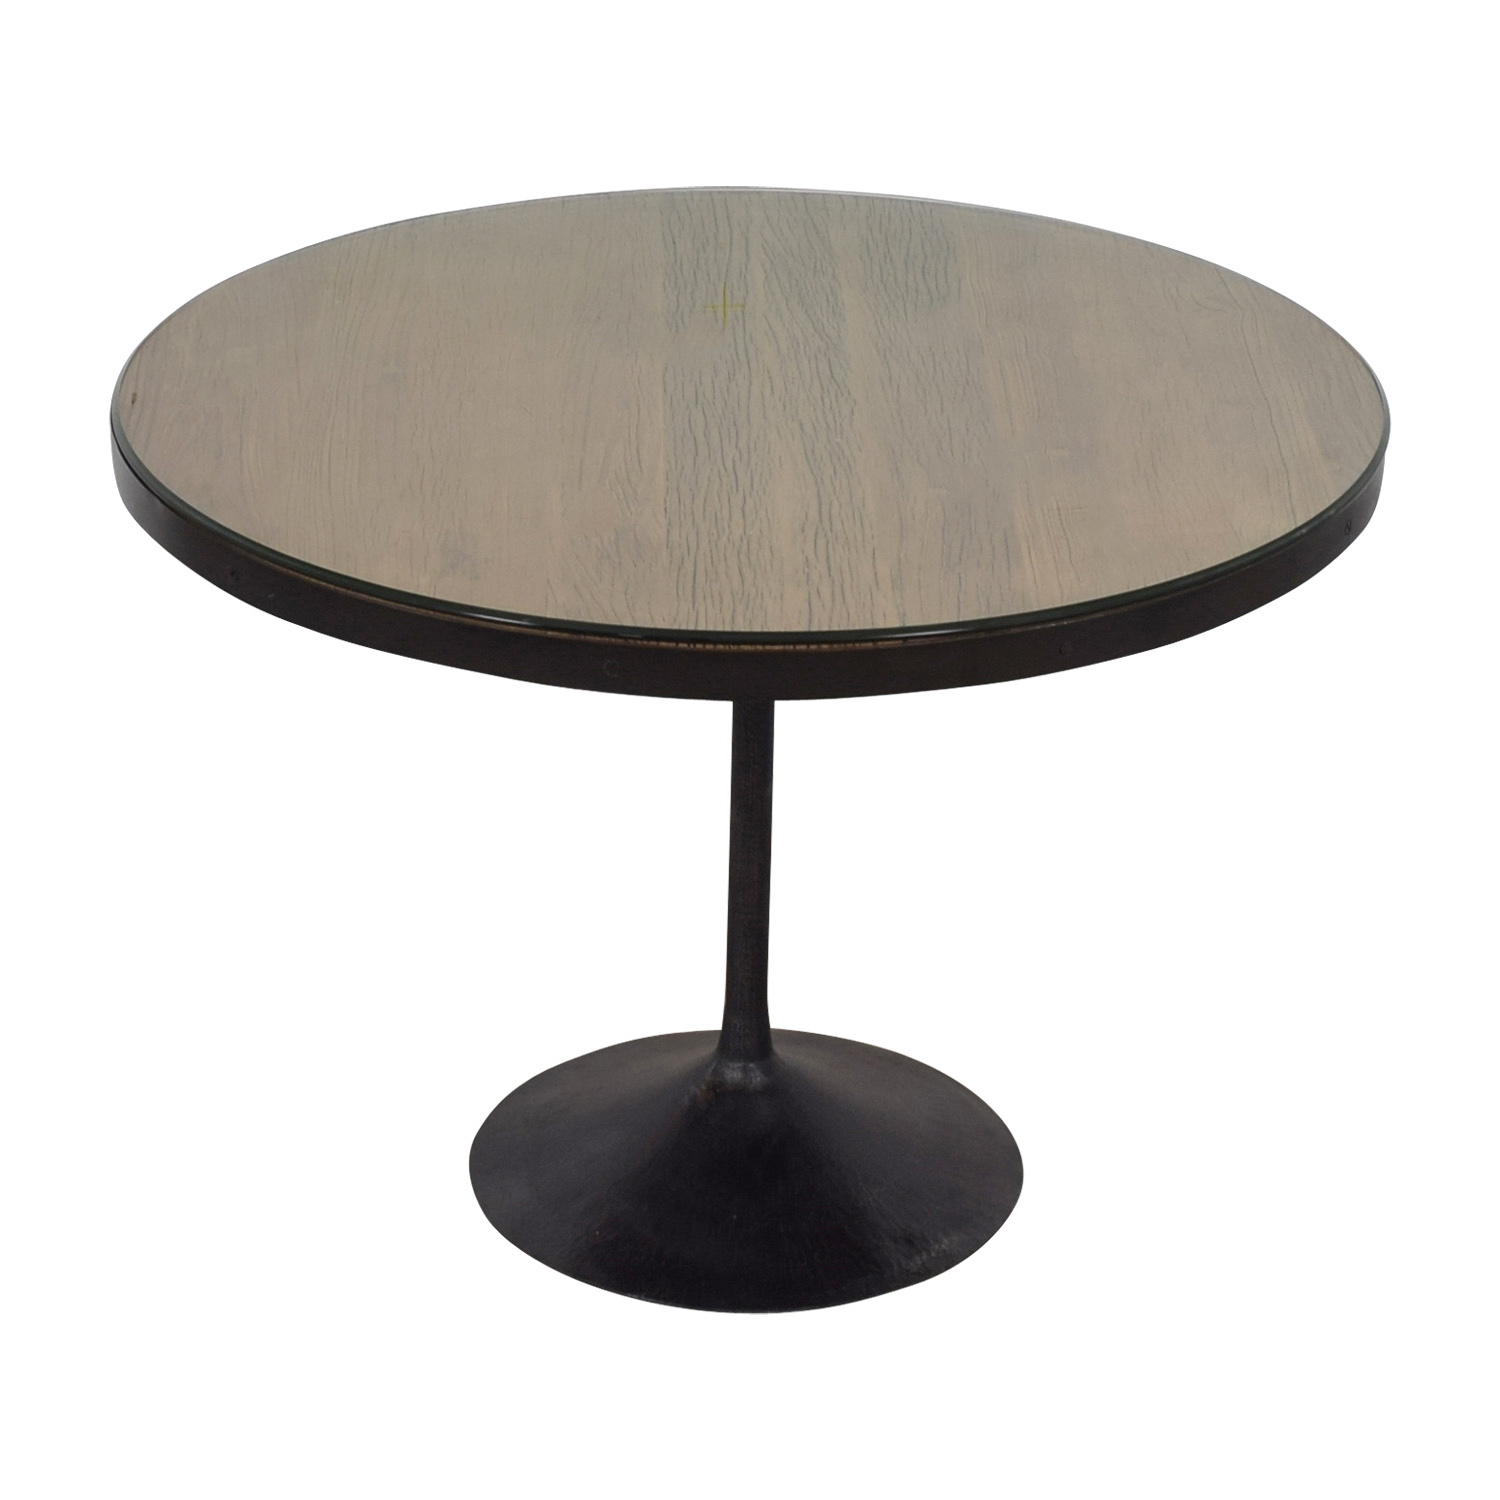 shop Restoration Hardware Restoration Hardware Aero Round Dining Table online